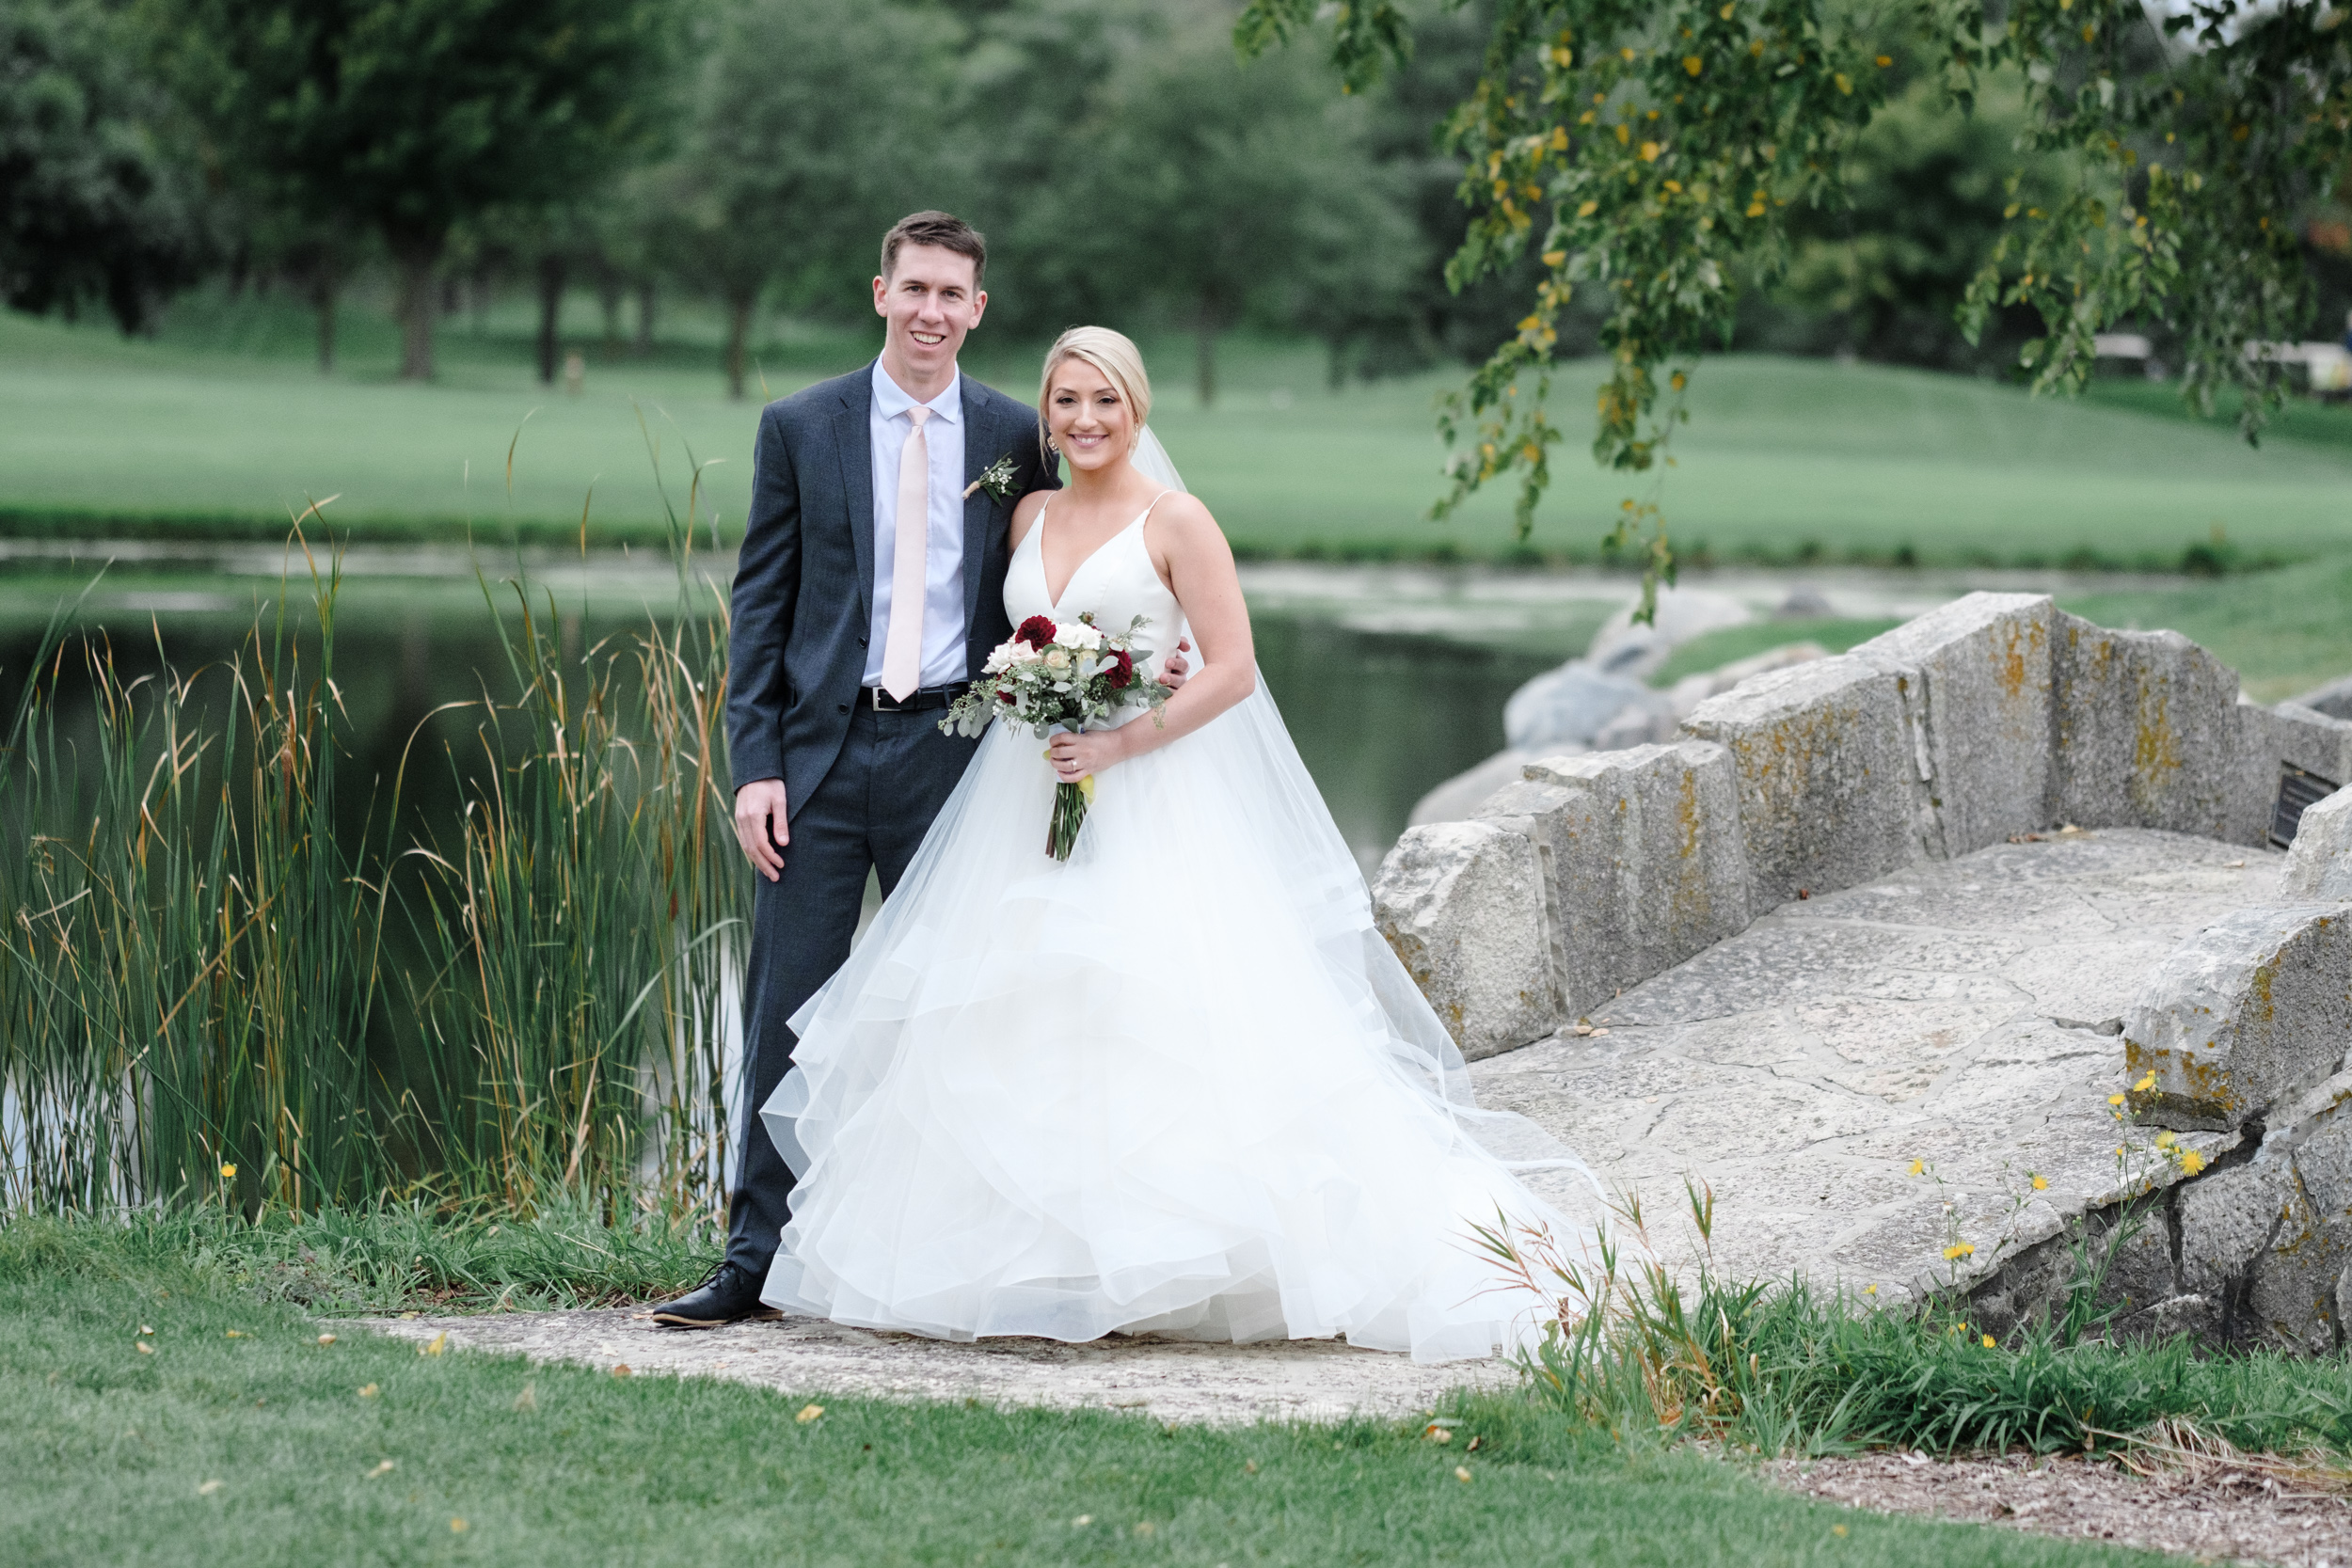 Bride and groom on stone bridge at Rockford Bank and Trust Pavilion.